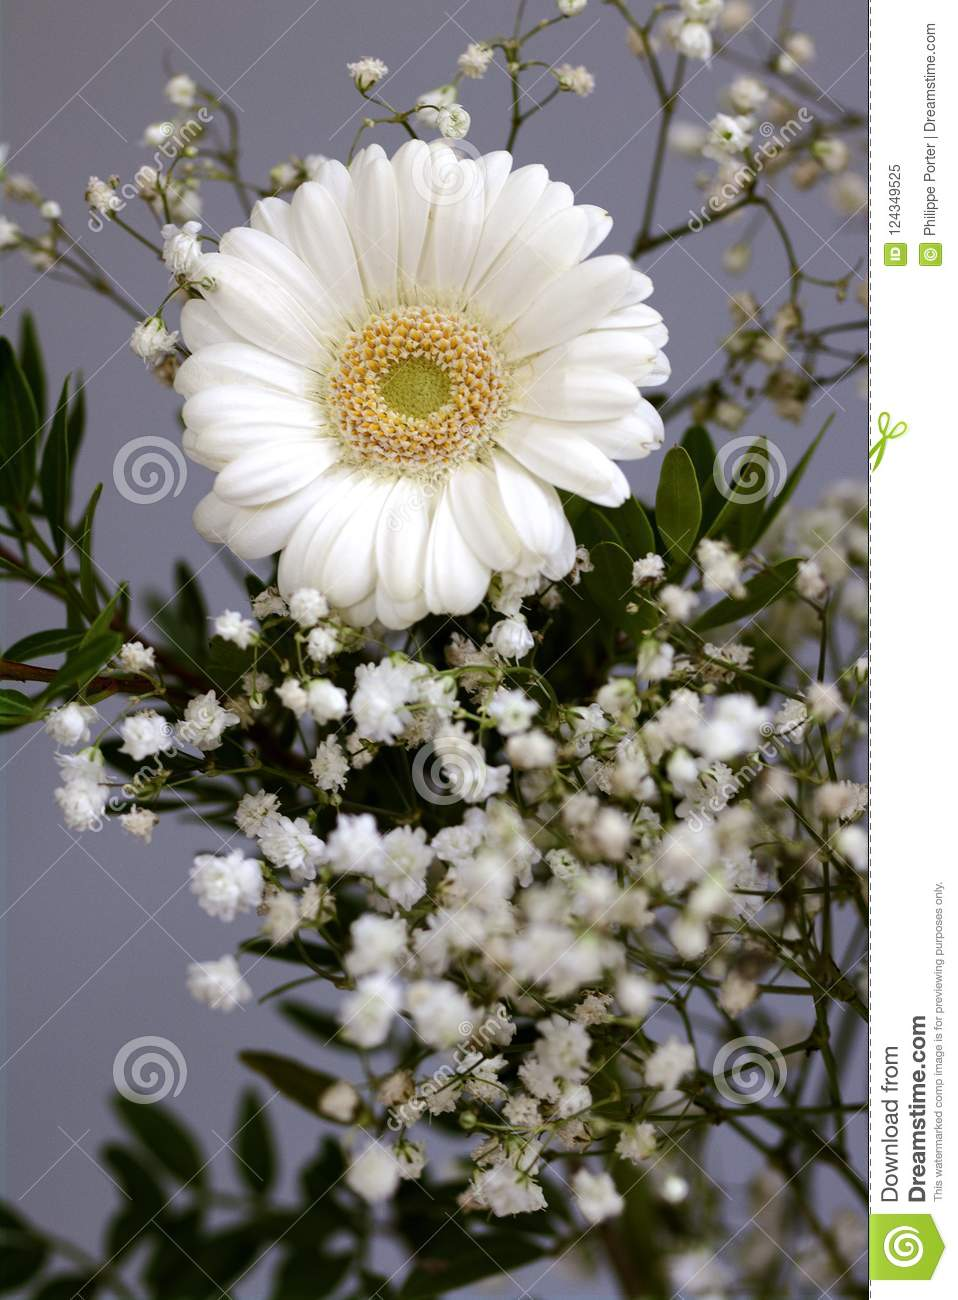 New beginnings bouquet daisy flowers white petals loyal love stock download new beginnings bouquet daisy flowers white petals loyal love stock image image of dawn izmirmasajfo